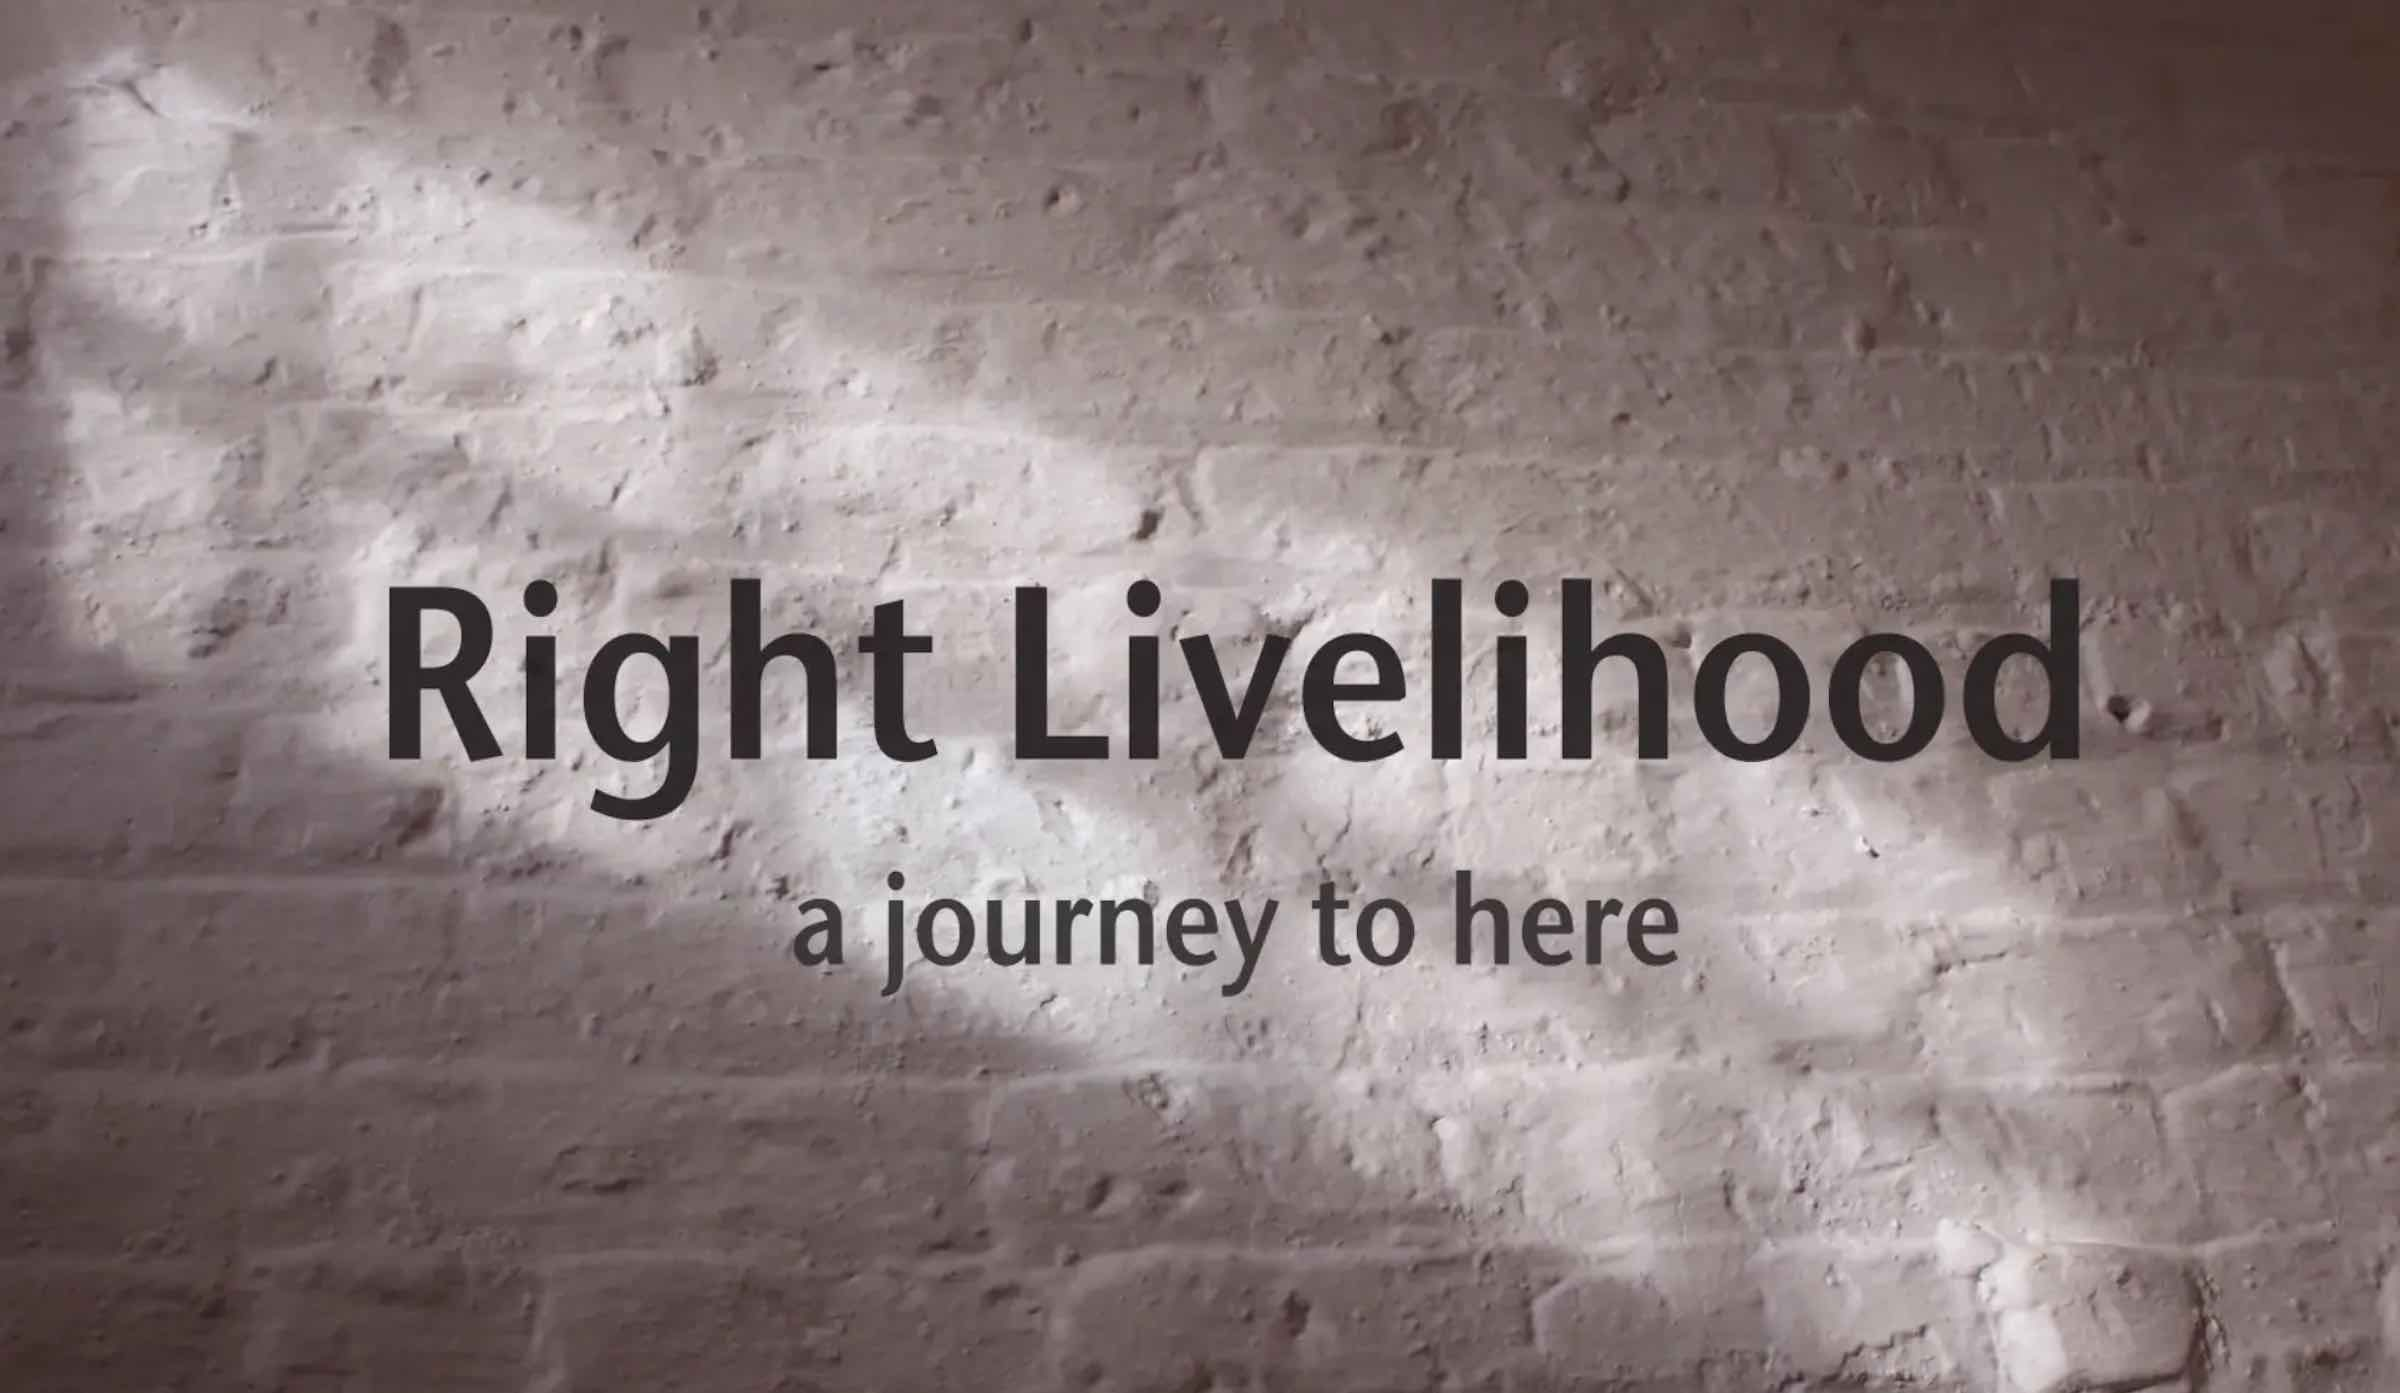 Our indie filmmaker of the day is Tricia Brouk. Her documentary short 'Right Livelihood: A Journey to Here' debuts in LA June 20th - 27th, 2019.